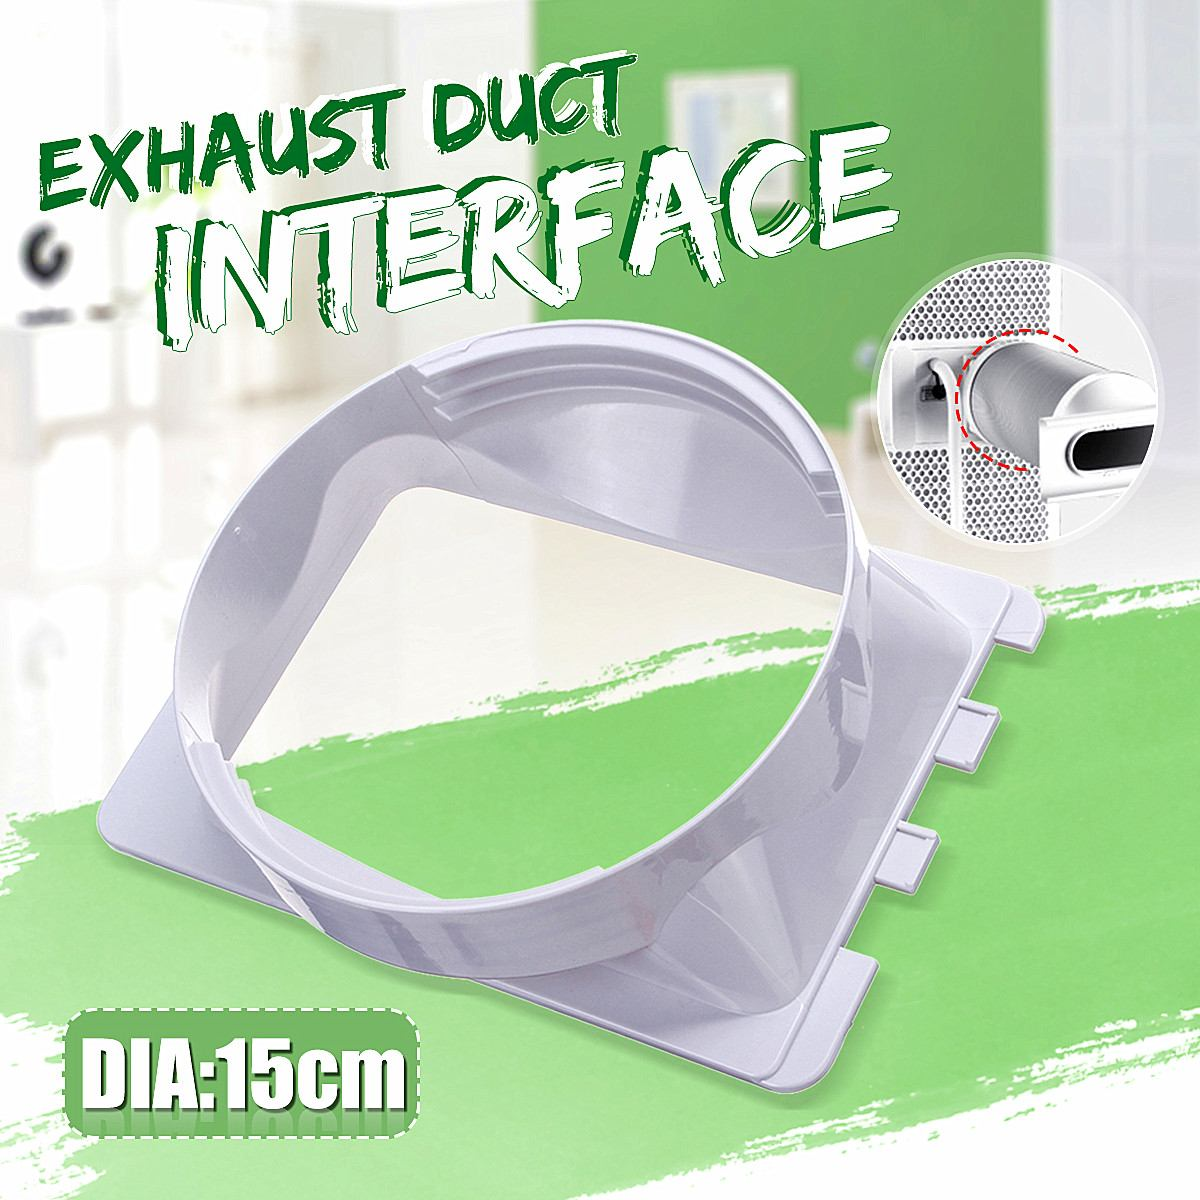 Diameter 15cm/5.9 Portable Air Conditioning Body Exhaust Duct Interface Exhaust Pipe Connector Air Conditioner Accessories PartDiameter 15cm/5.9 Portable Air Conditioning Body Exhaust Duct Interface Exhaust Pipe Connector Air Conditioner Accessories Part